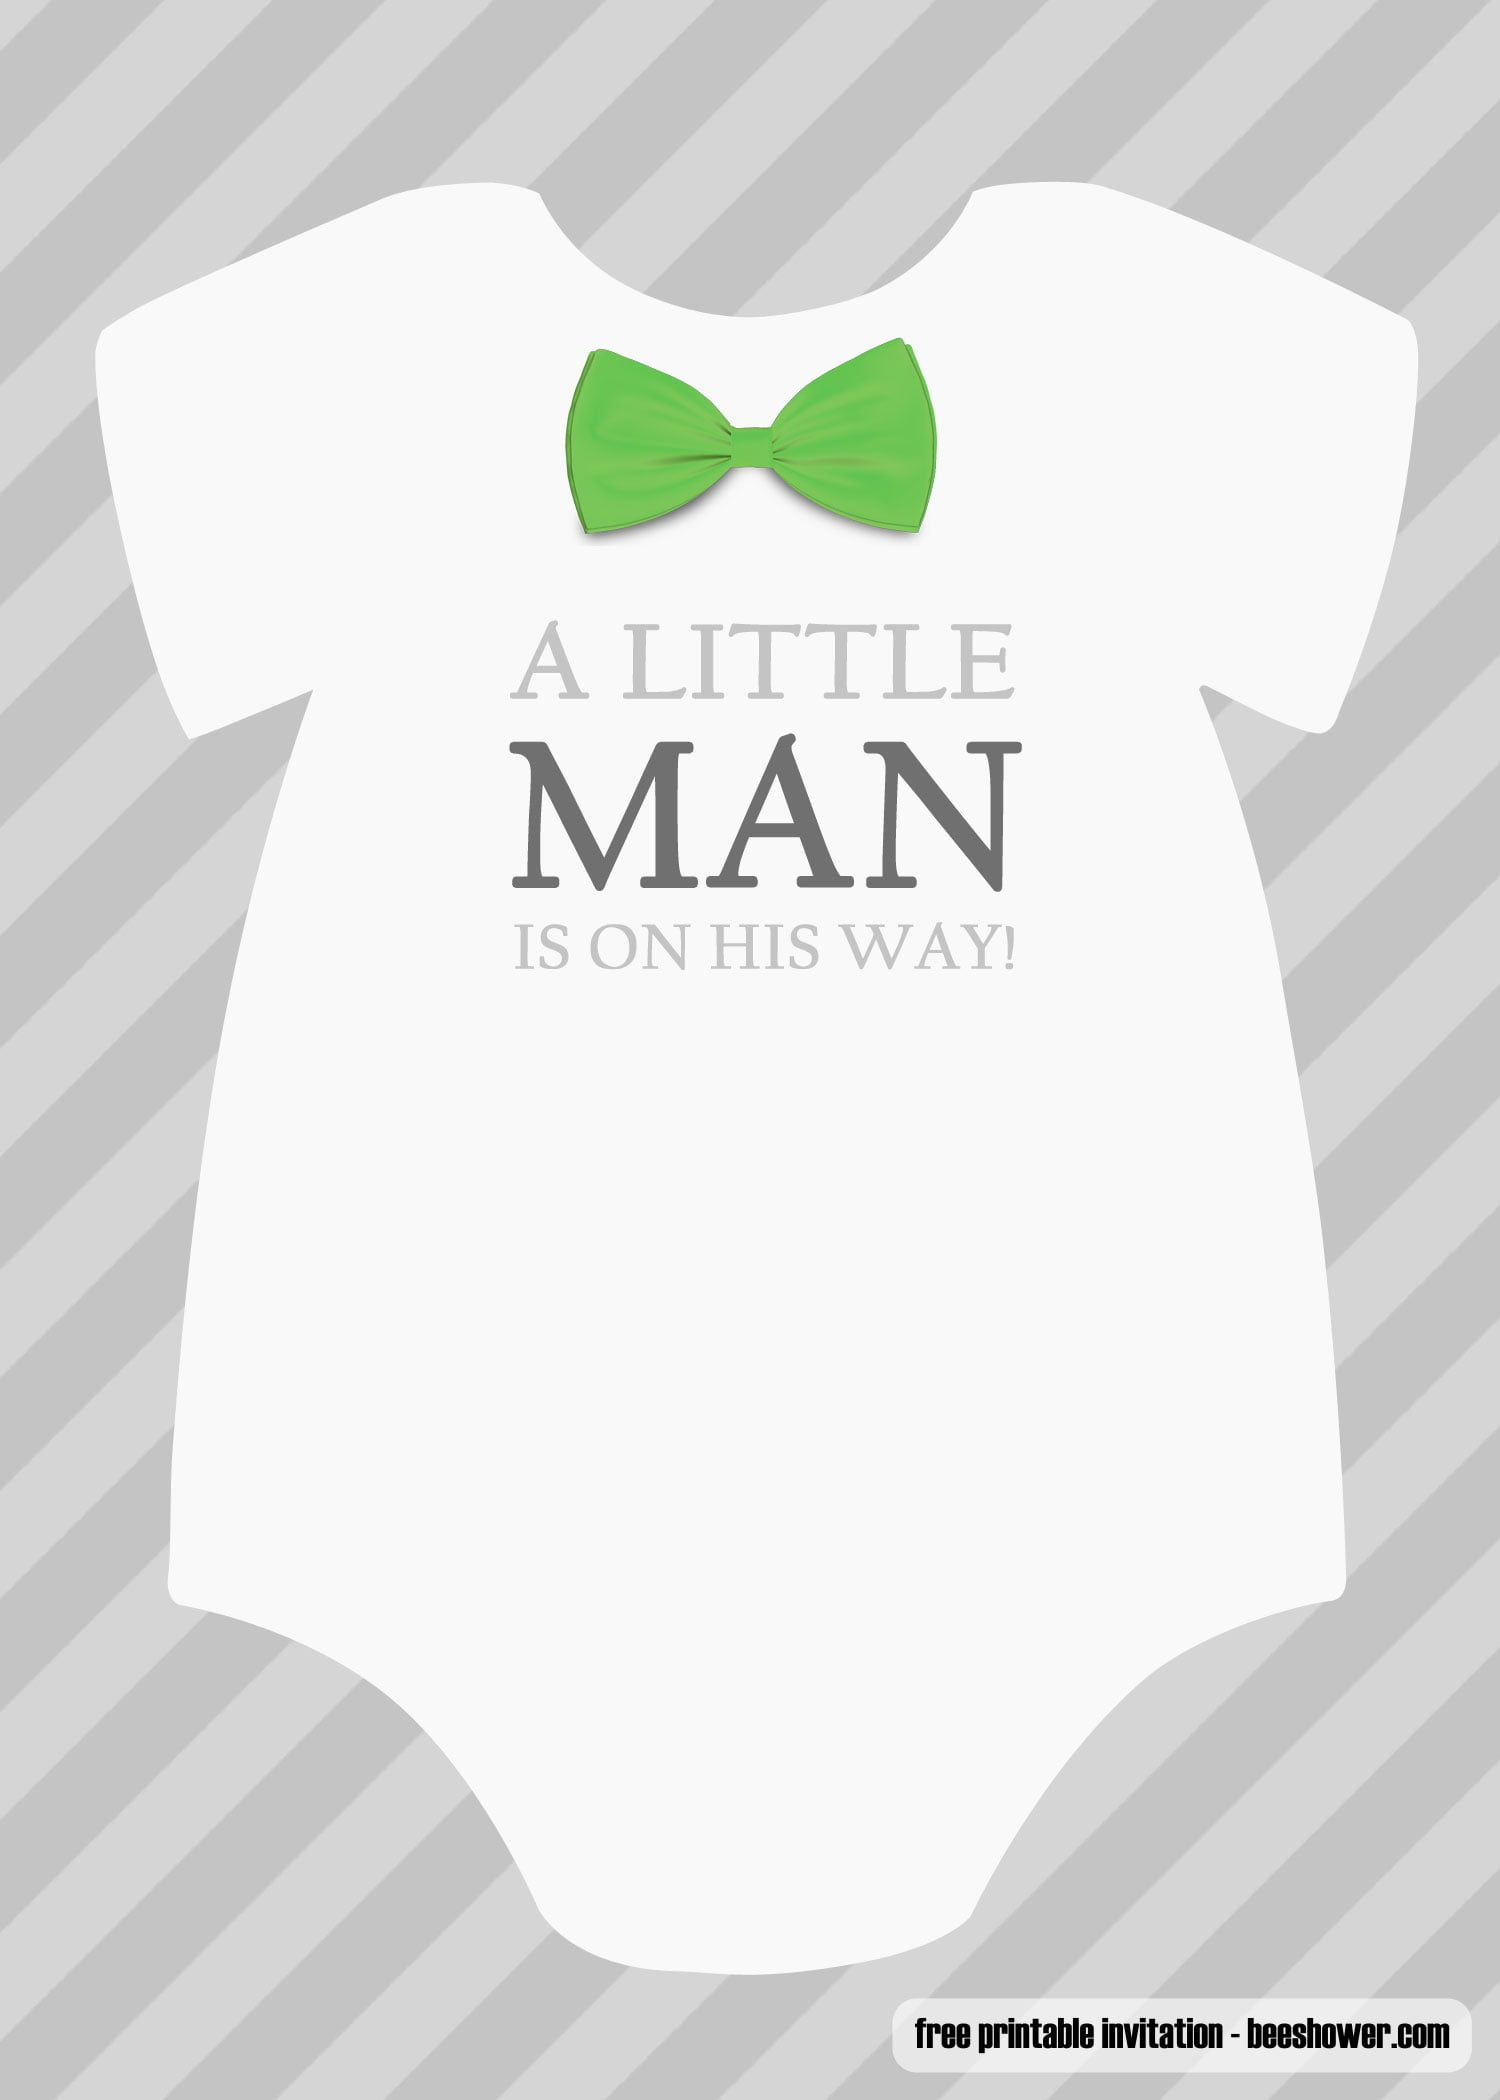 003 Archaicawful Free Baby Shower Invitation Template For Boy Concept Full